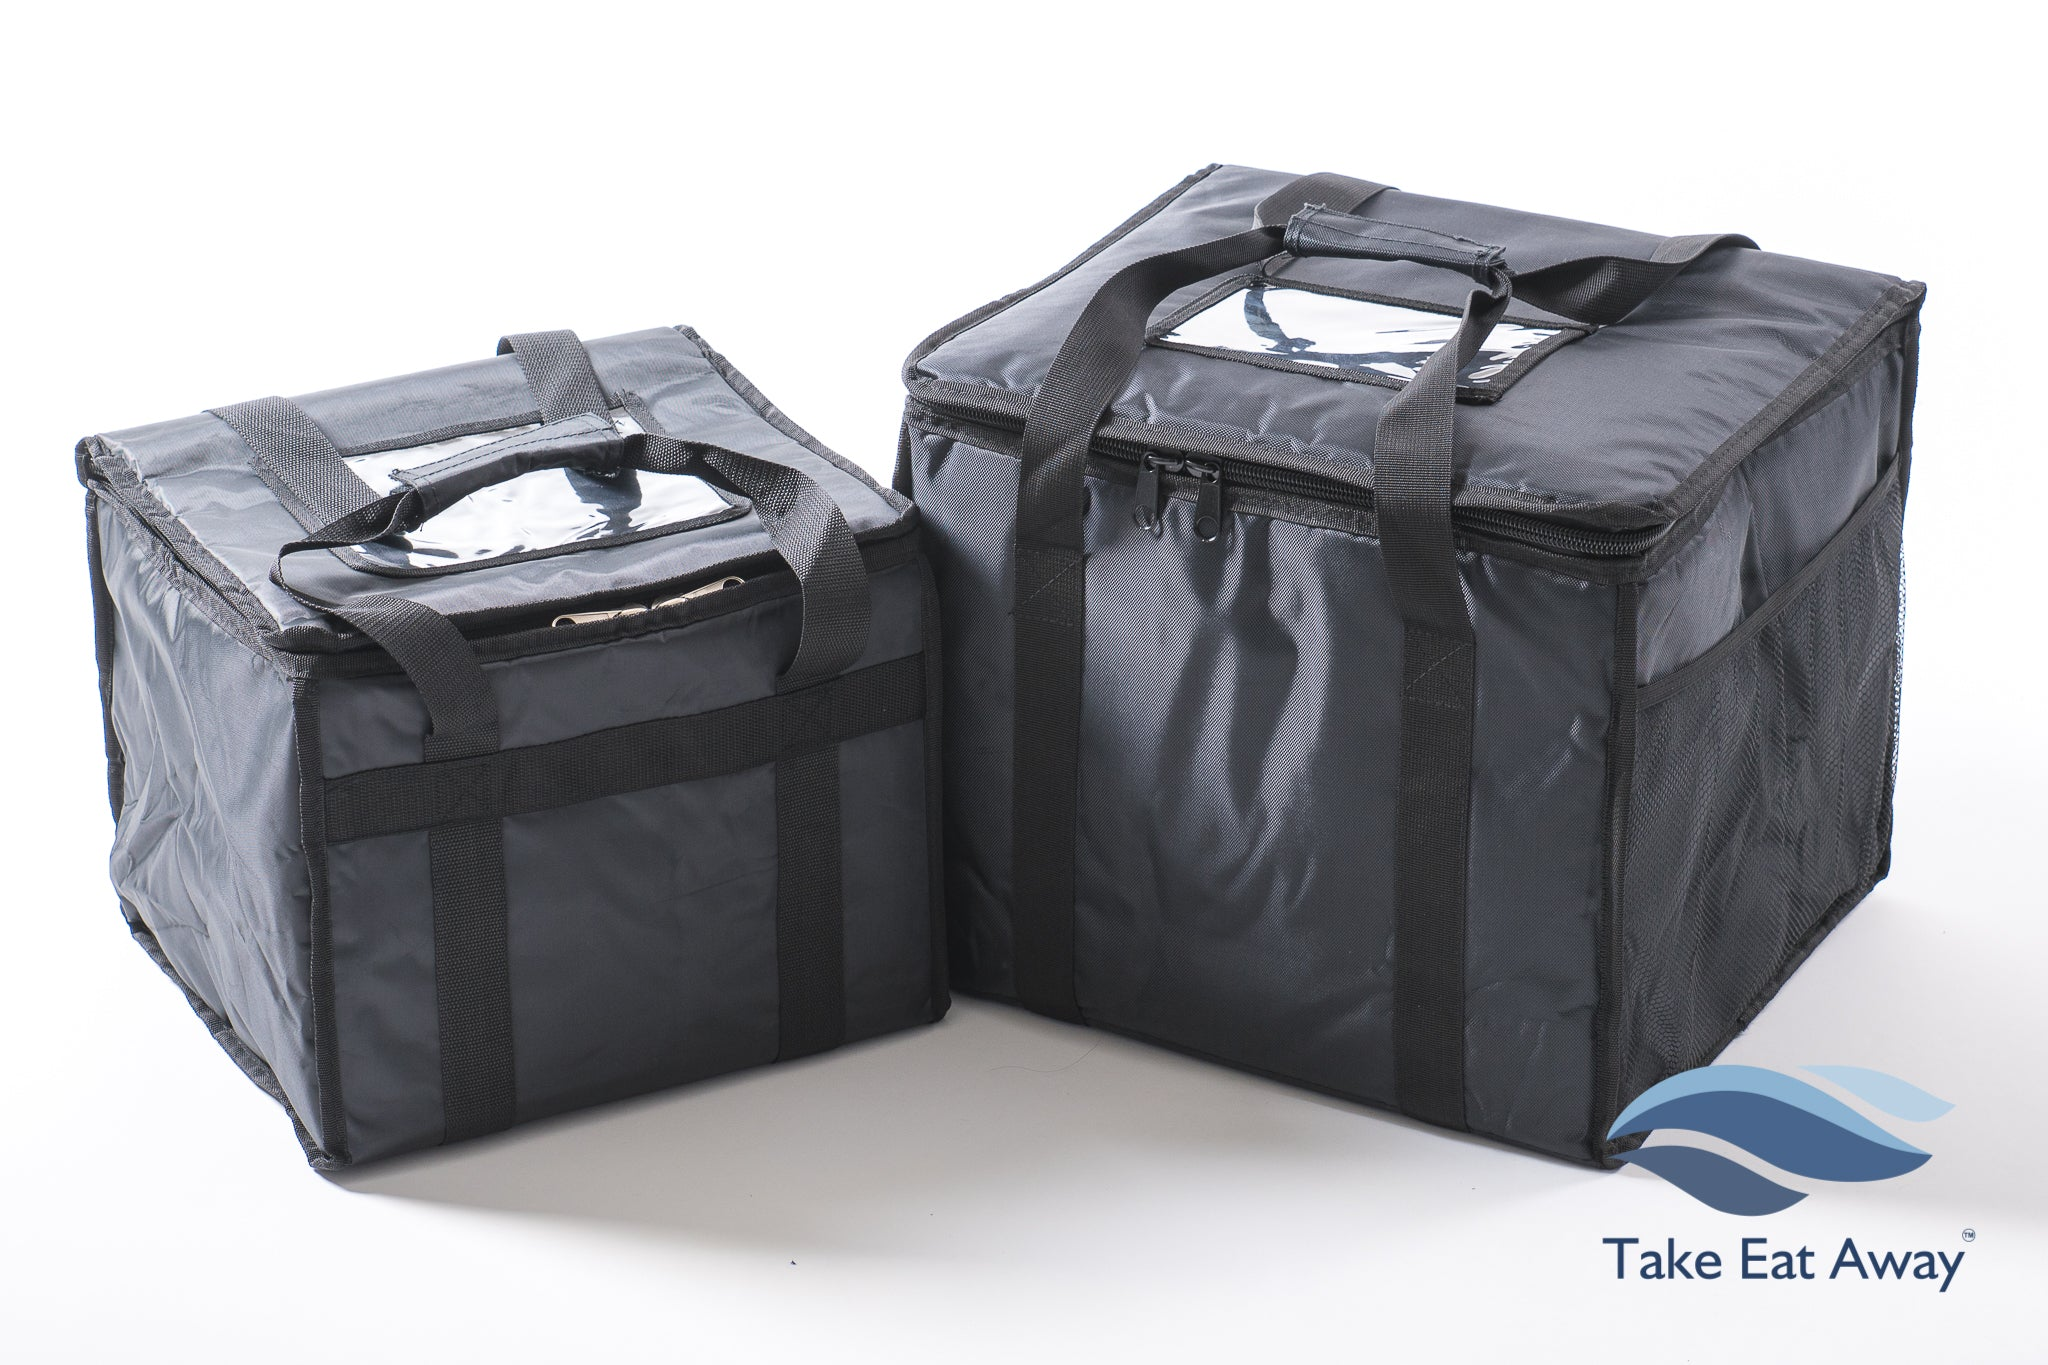 *CC5 Food Delivery Bags- 2 Bags- Insulated Hot/Cold Deliveries Bags T16/17